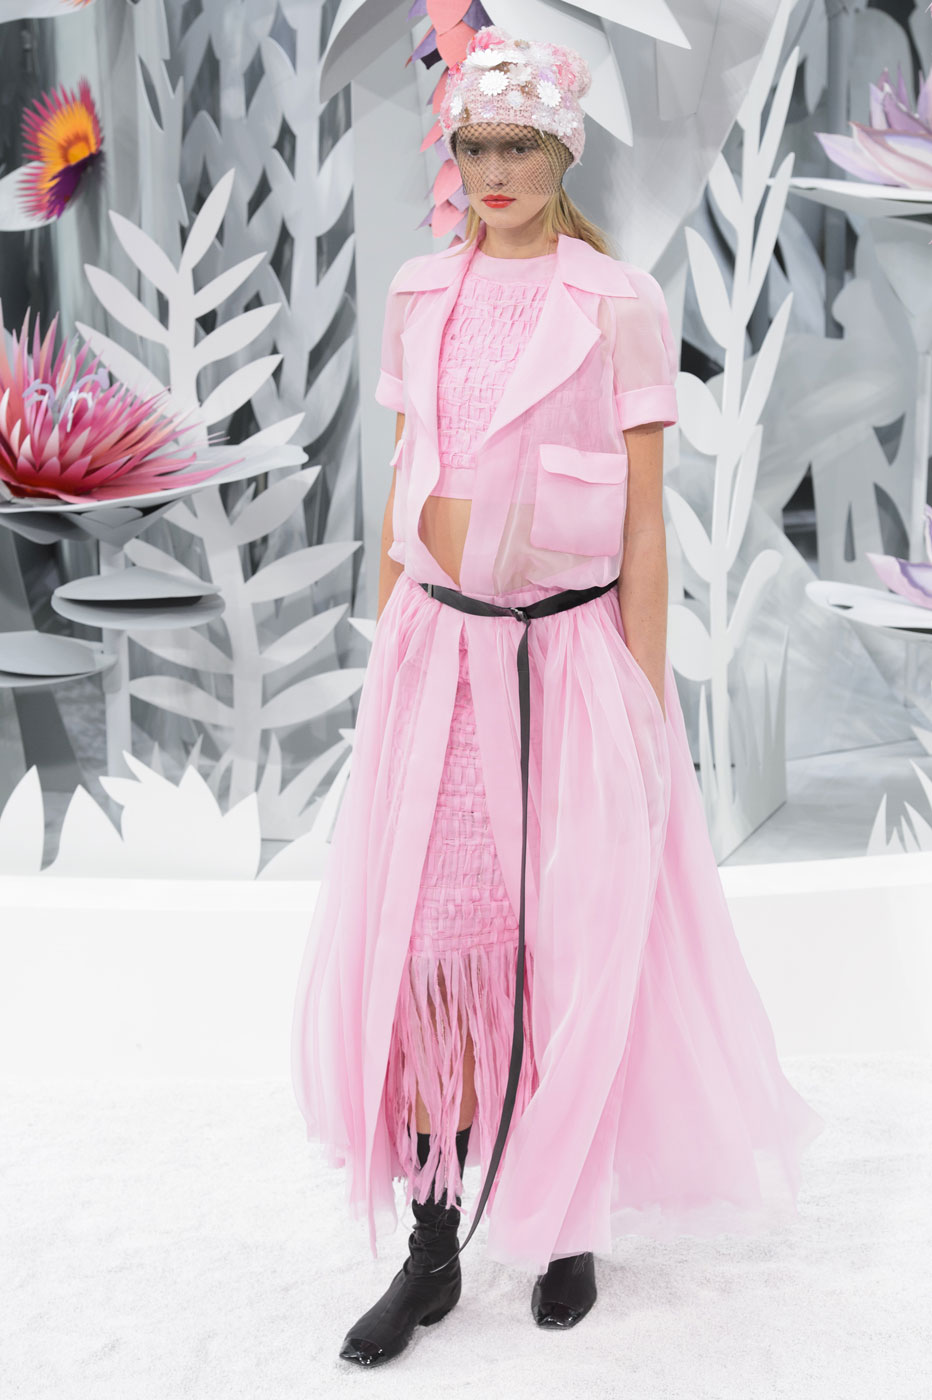 Chanel-fashion-runway-show-haute-couture-paris-spring-summer-2015-the-impression-073